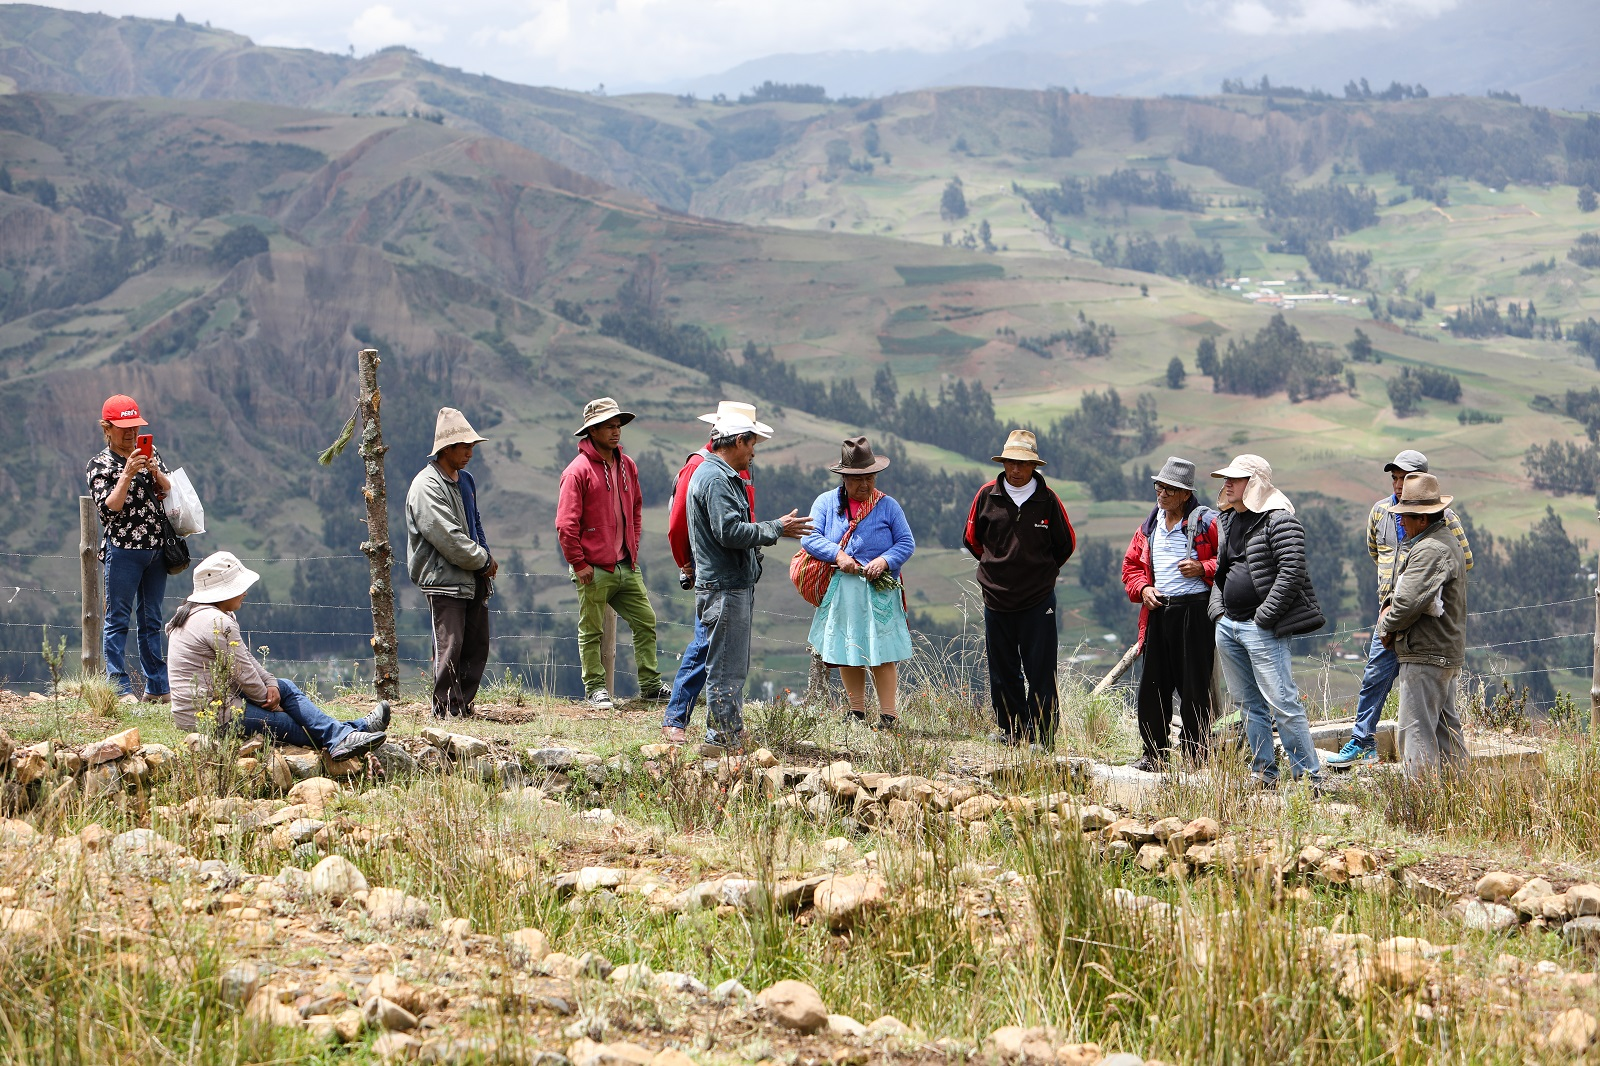 Image of researchers and community in Peru